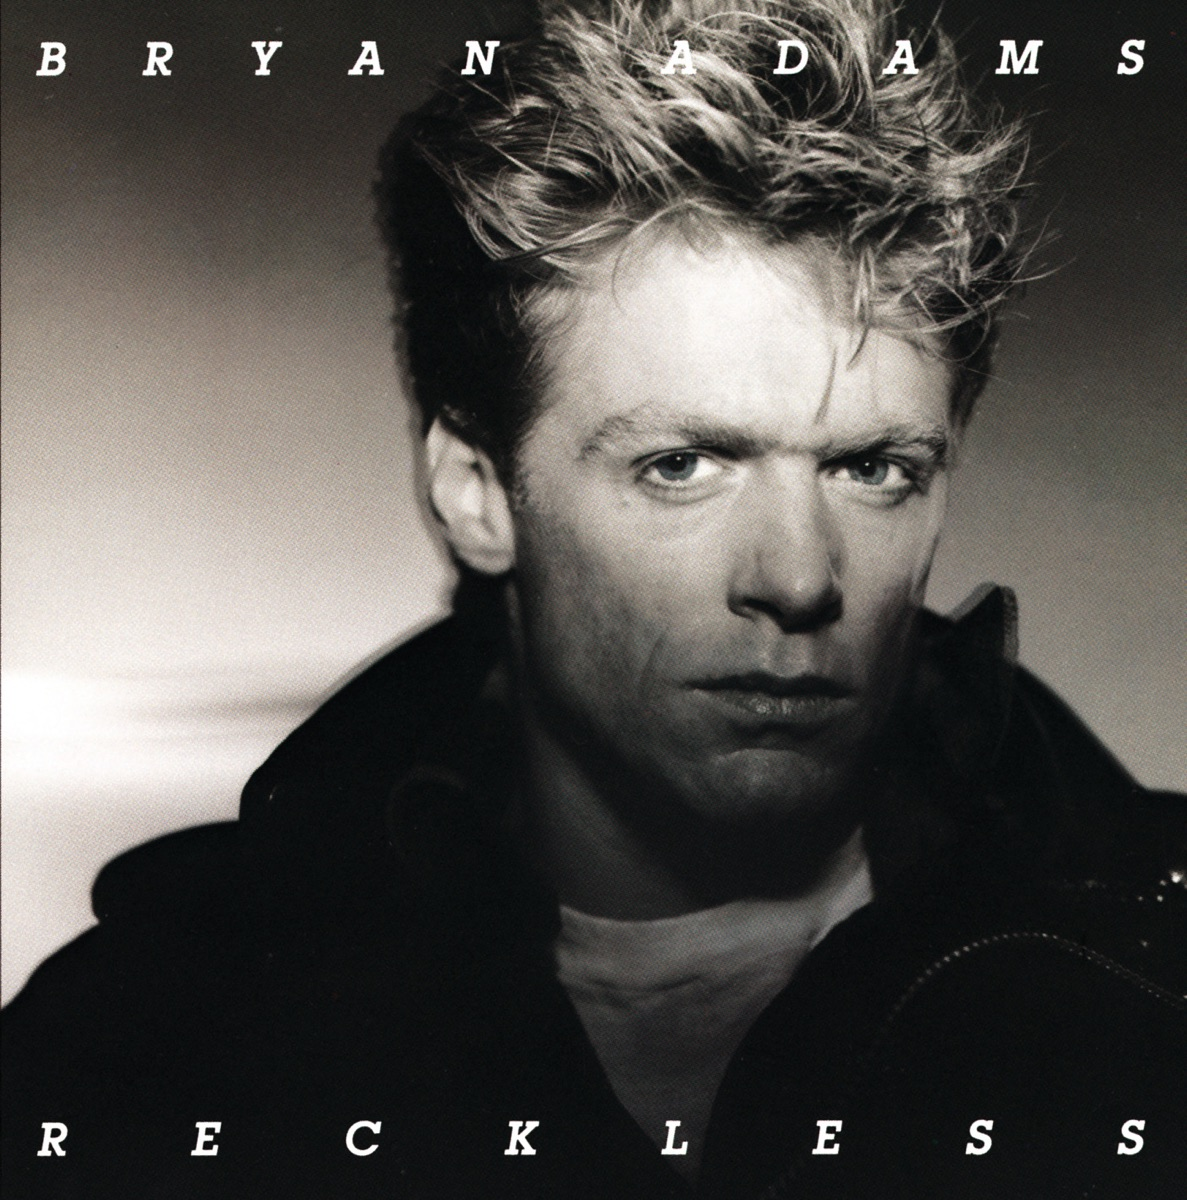 Reckless Remastered Bryan Adams CD cover